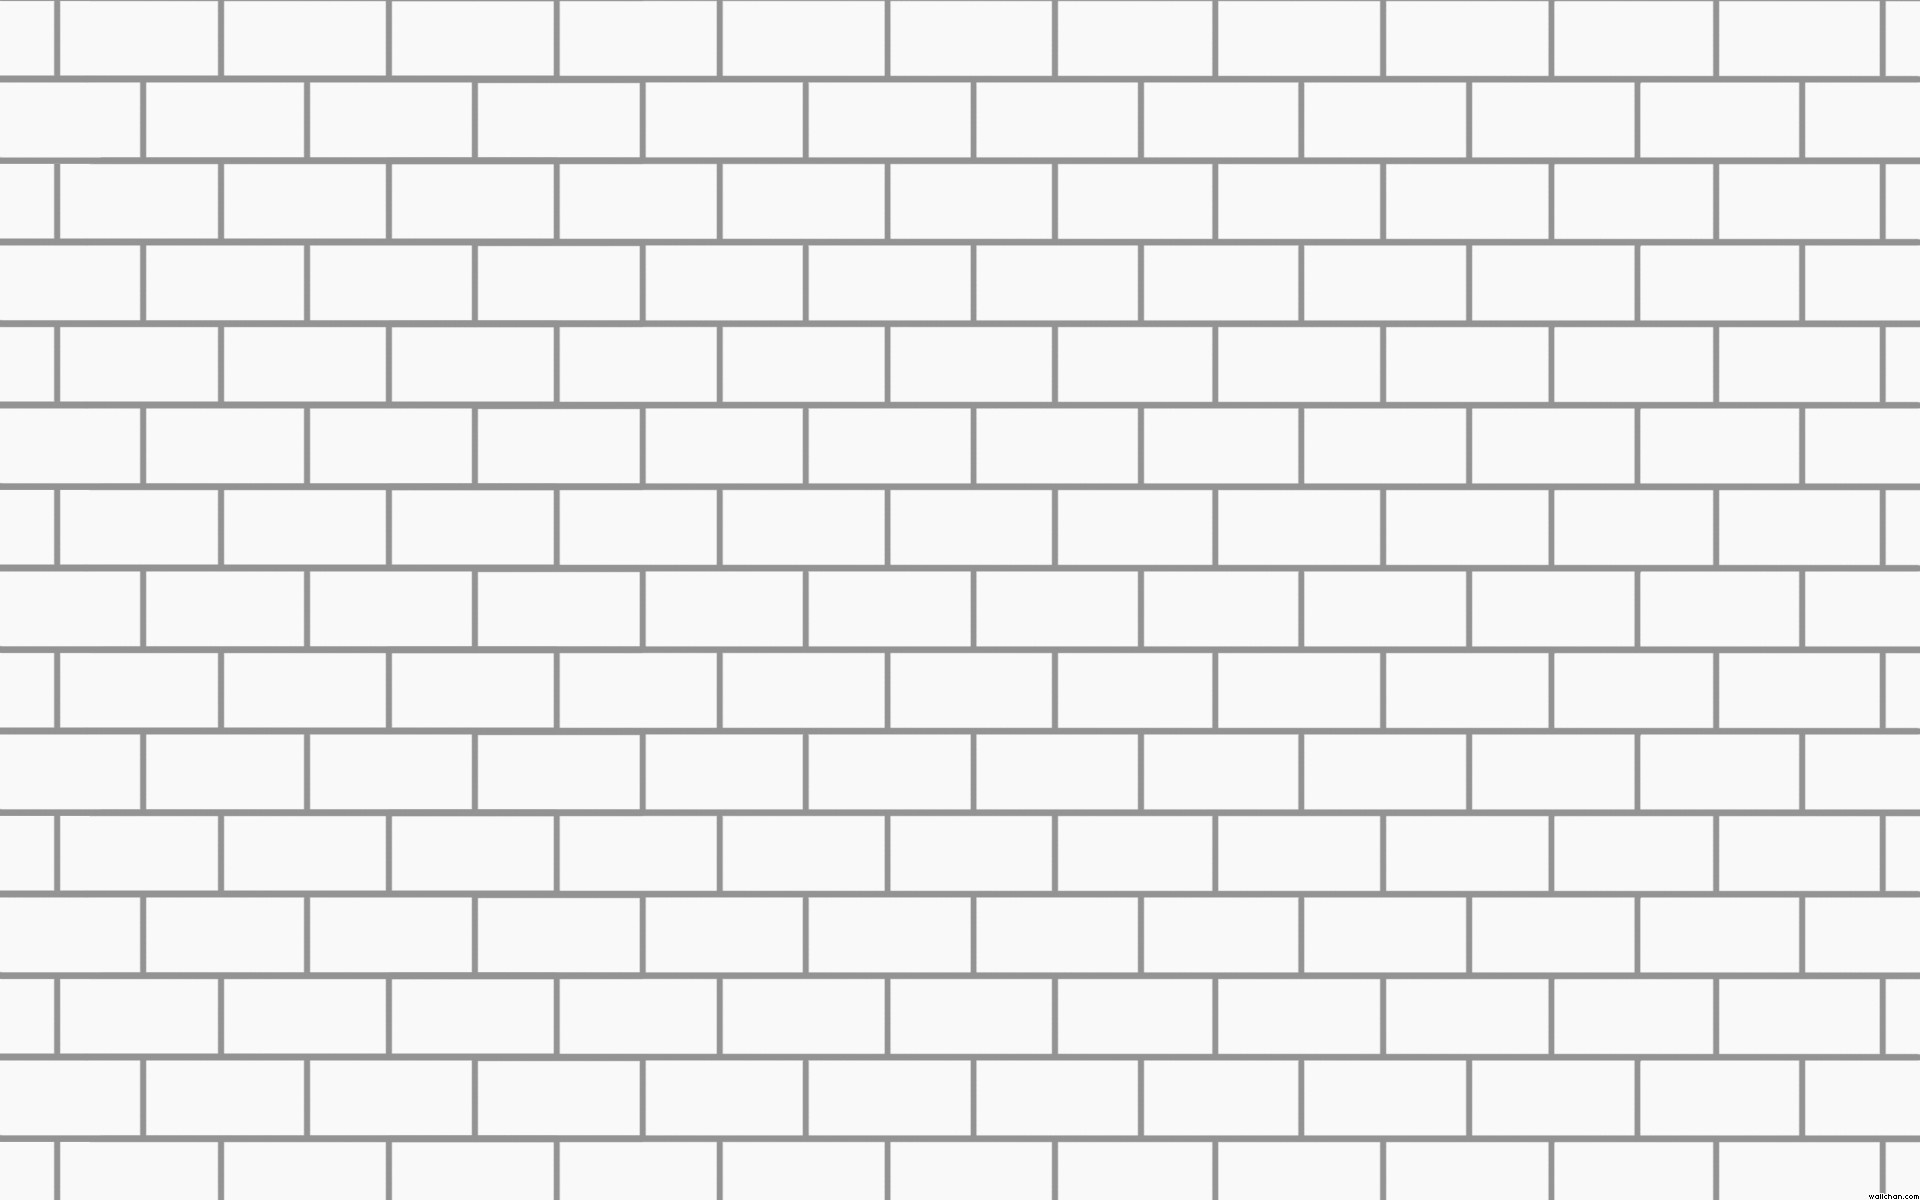 Pink Floyd The Wall Wallpapers – Wallpaper Cave